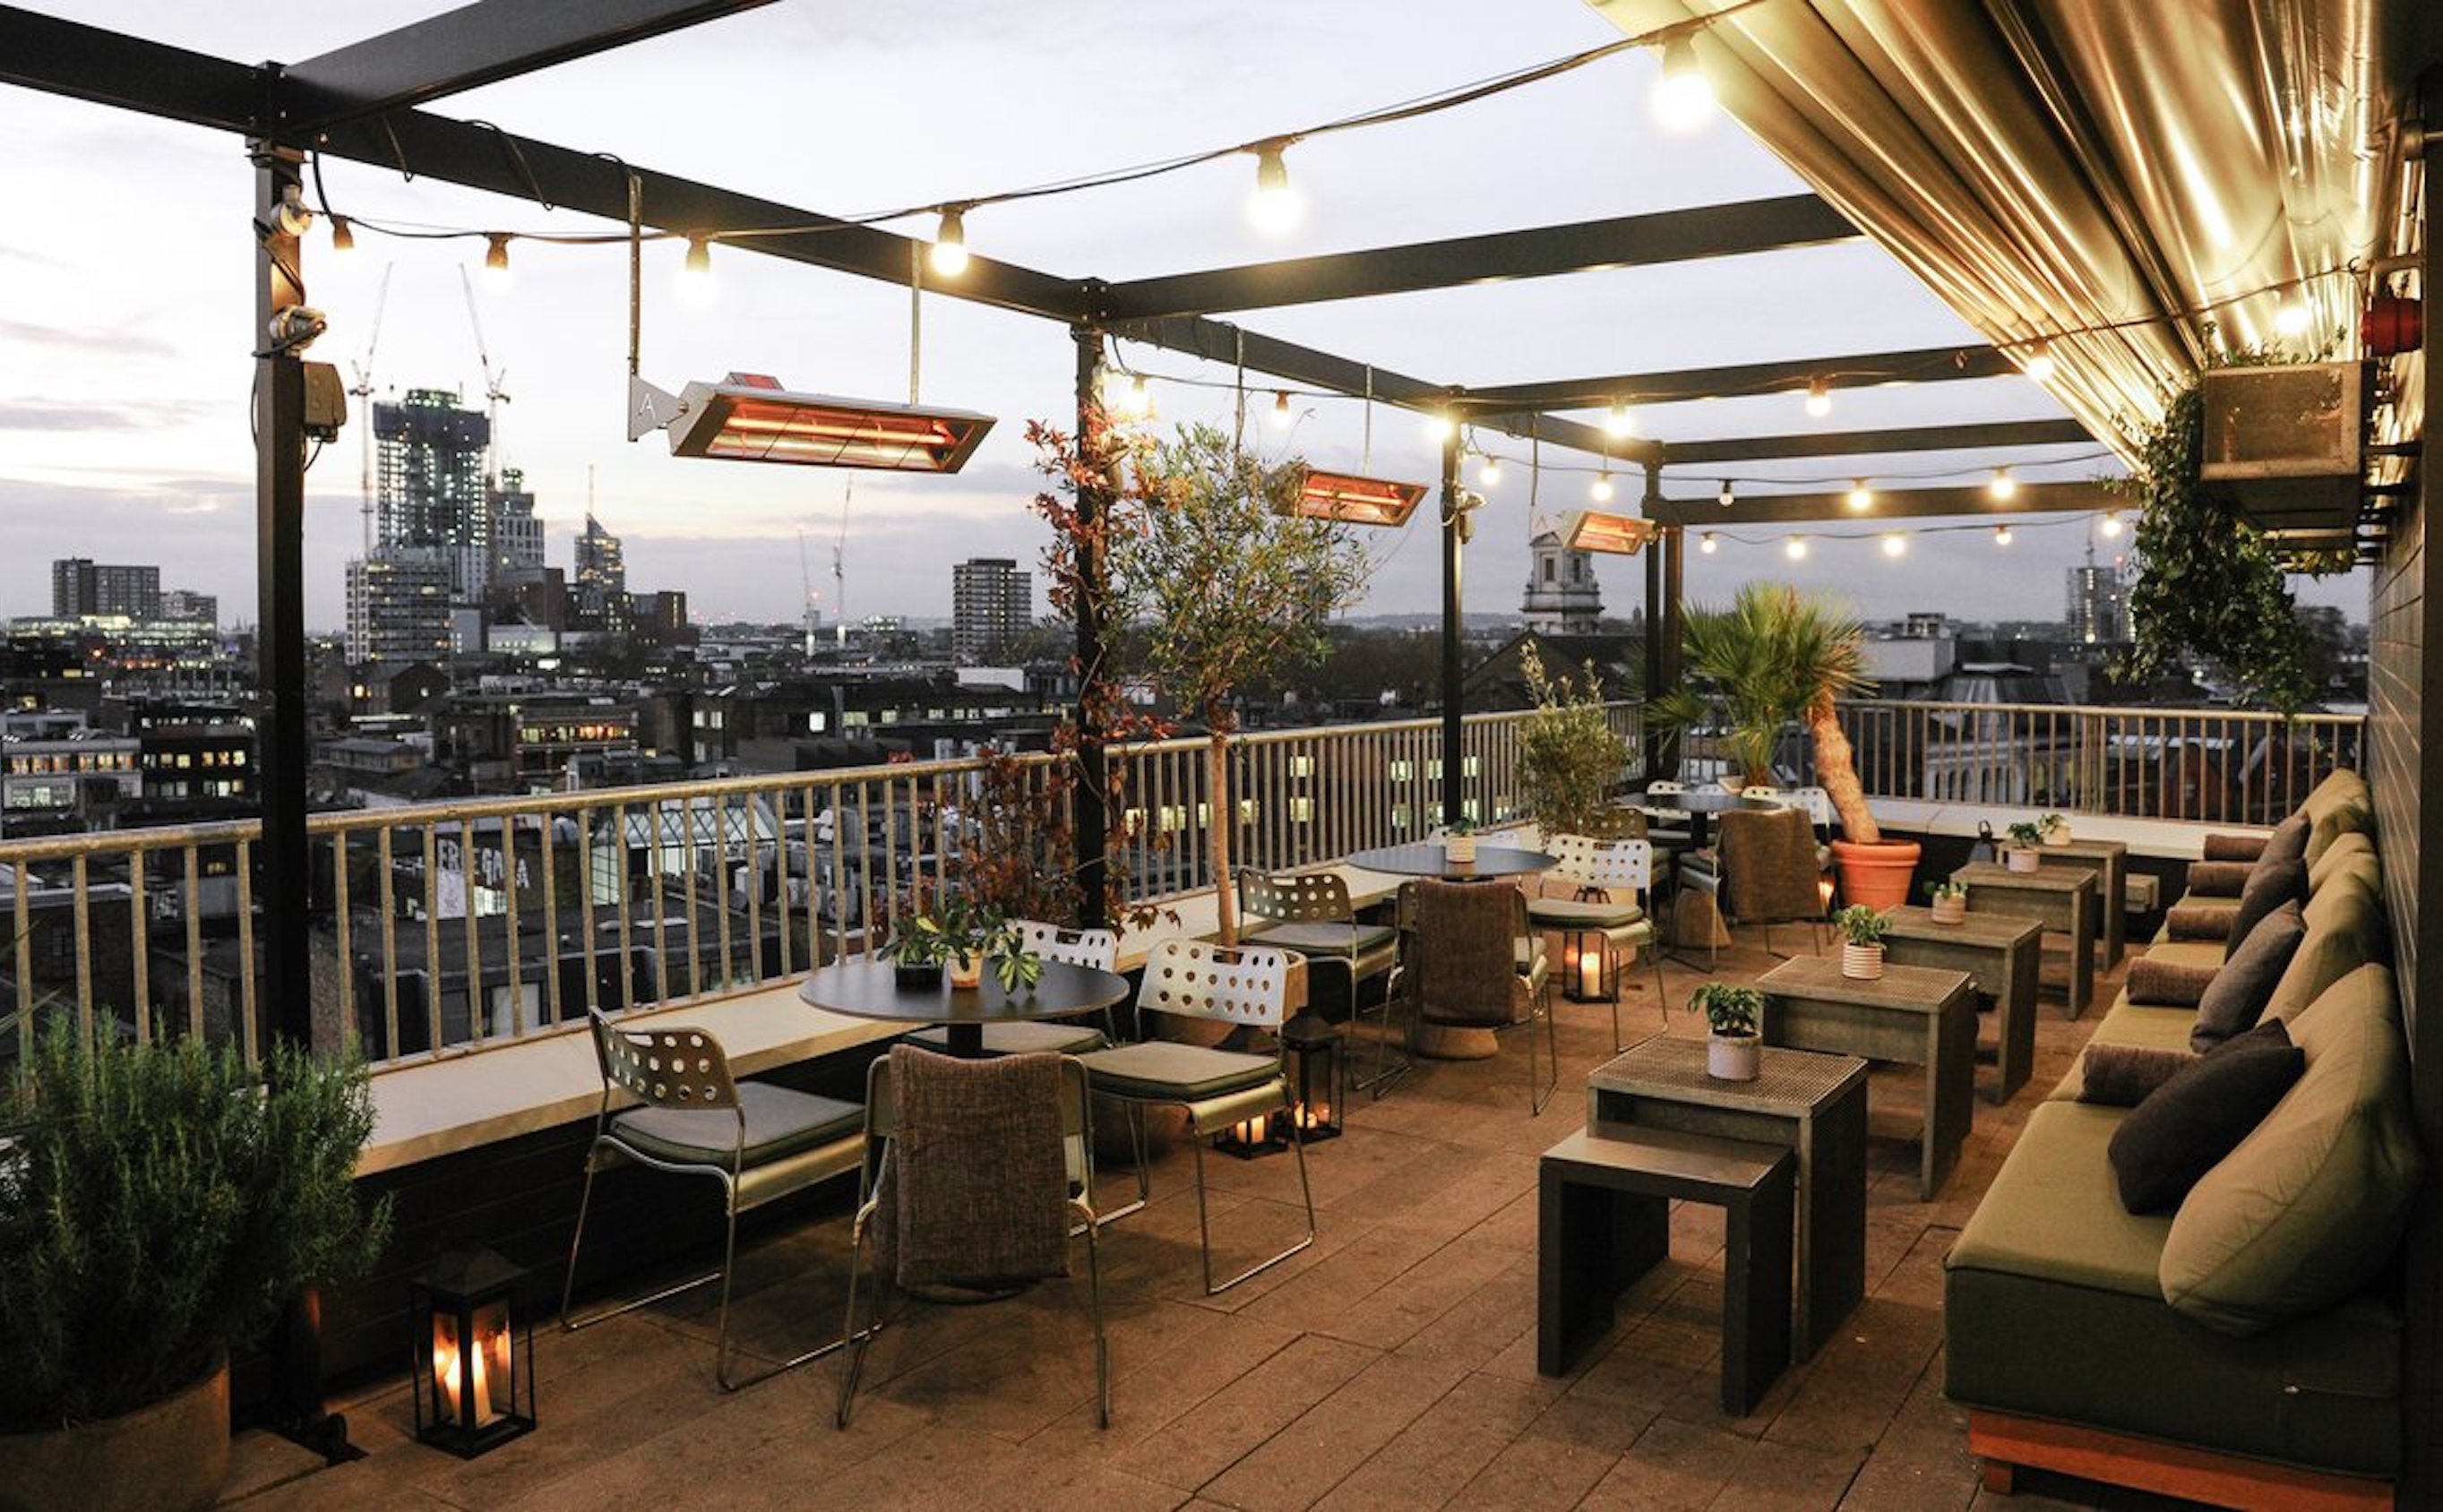 A hotel rooftop in Shoreditch adorned with filament bulbs, cushioned seating, and wooden decking